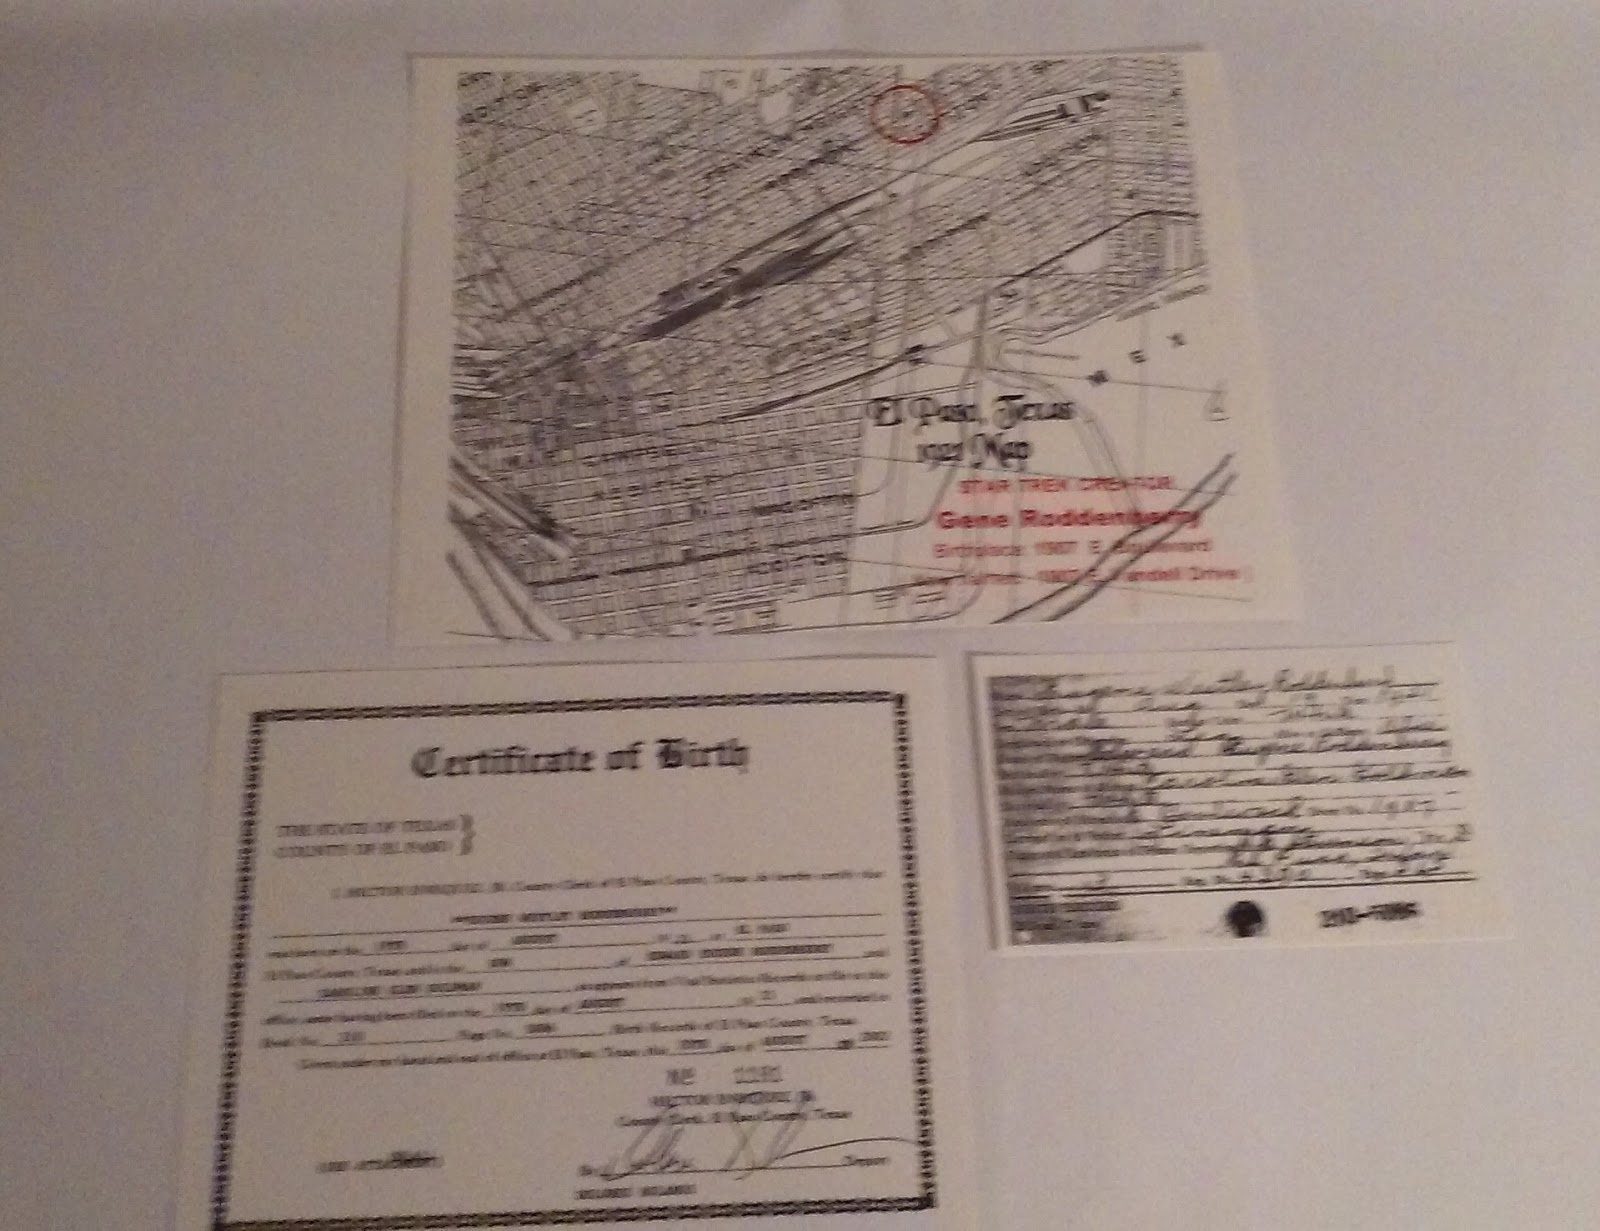 Travels with books happy birthday gene roddenberry these are copies printed around 2002 and signed by the county clerk of el paso texas the map shows the 1921 location of roddenberrys house aiddatafo Gallery